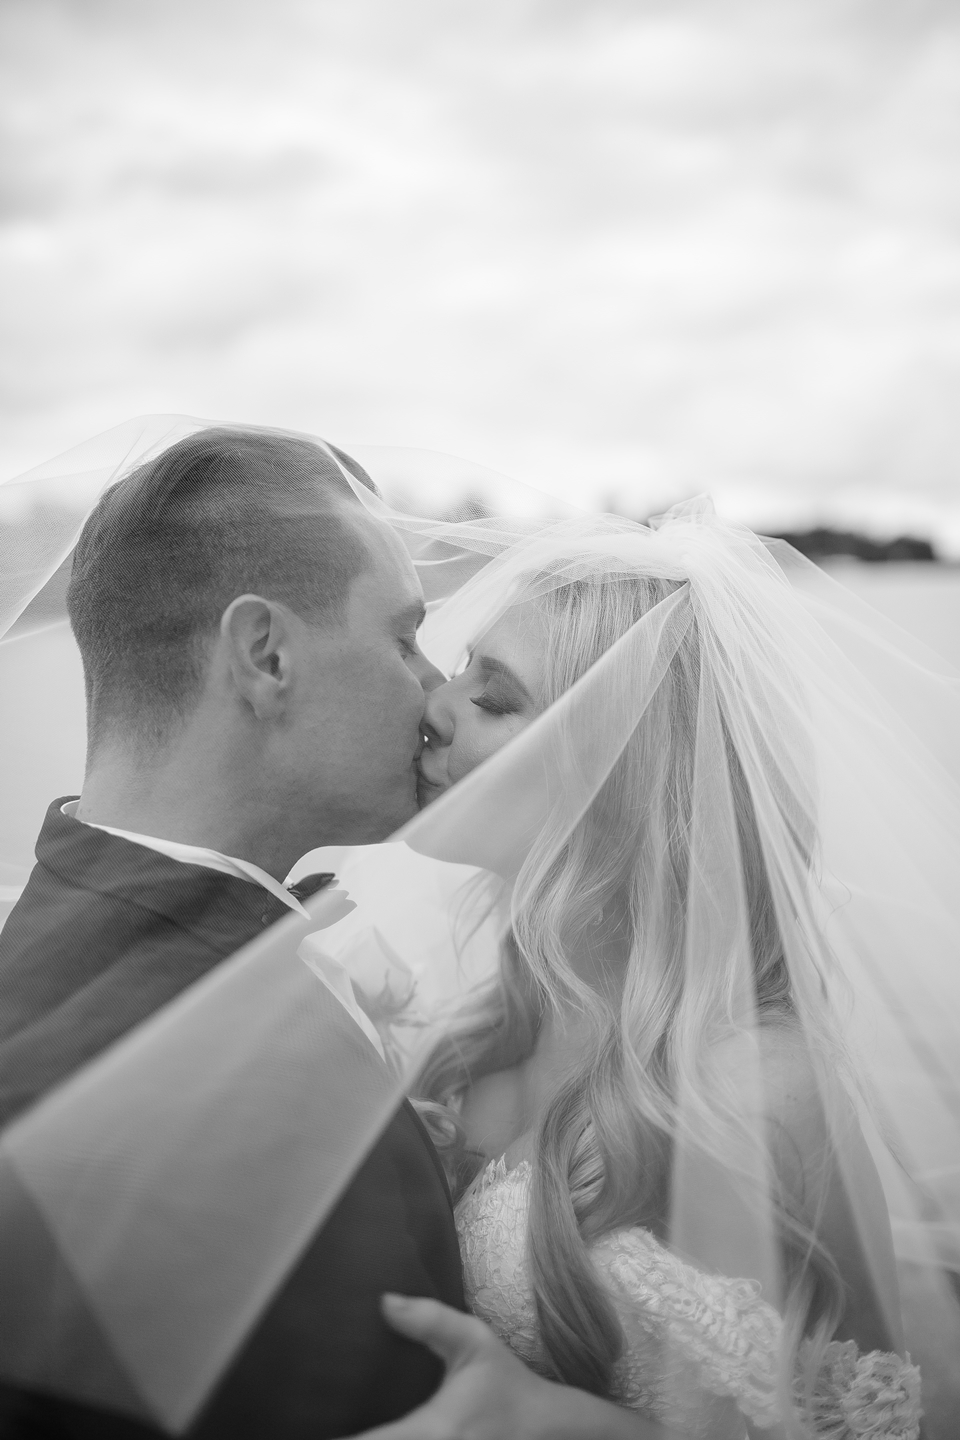 Bec & Callum Real Wedding The kiss! #wedding #weddingkiss #weddingideas